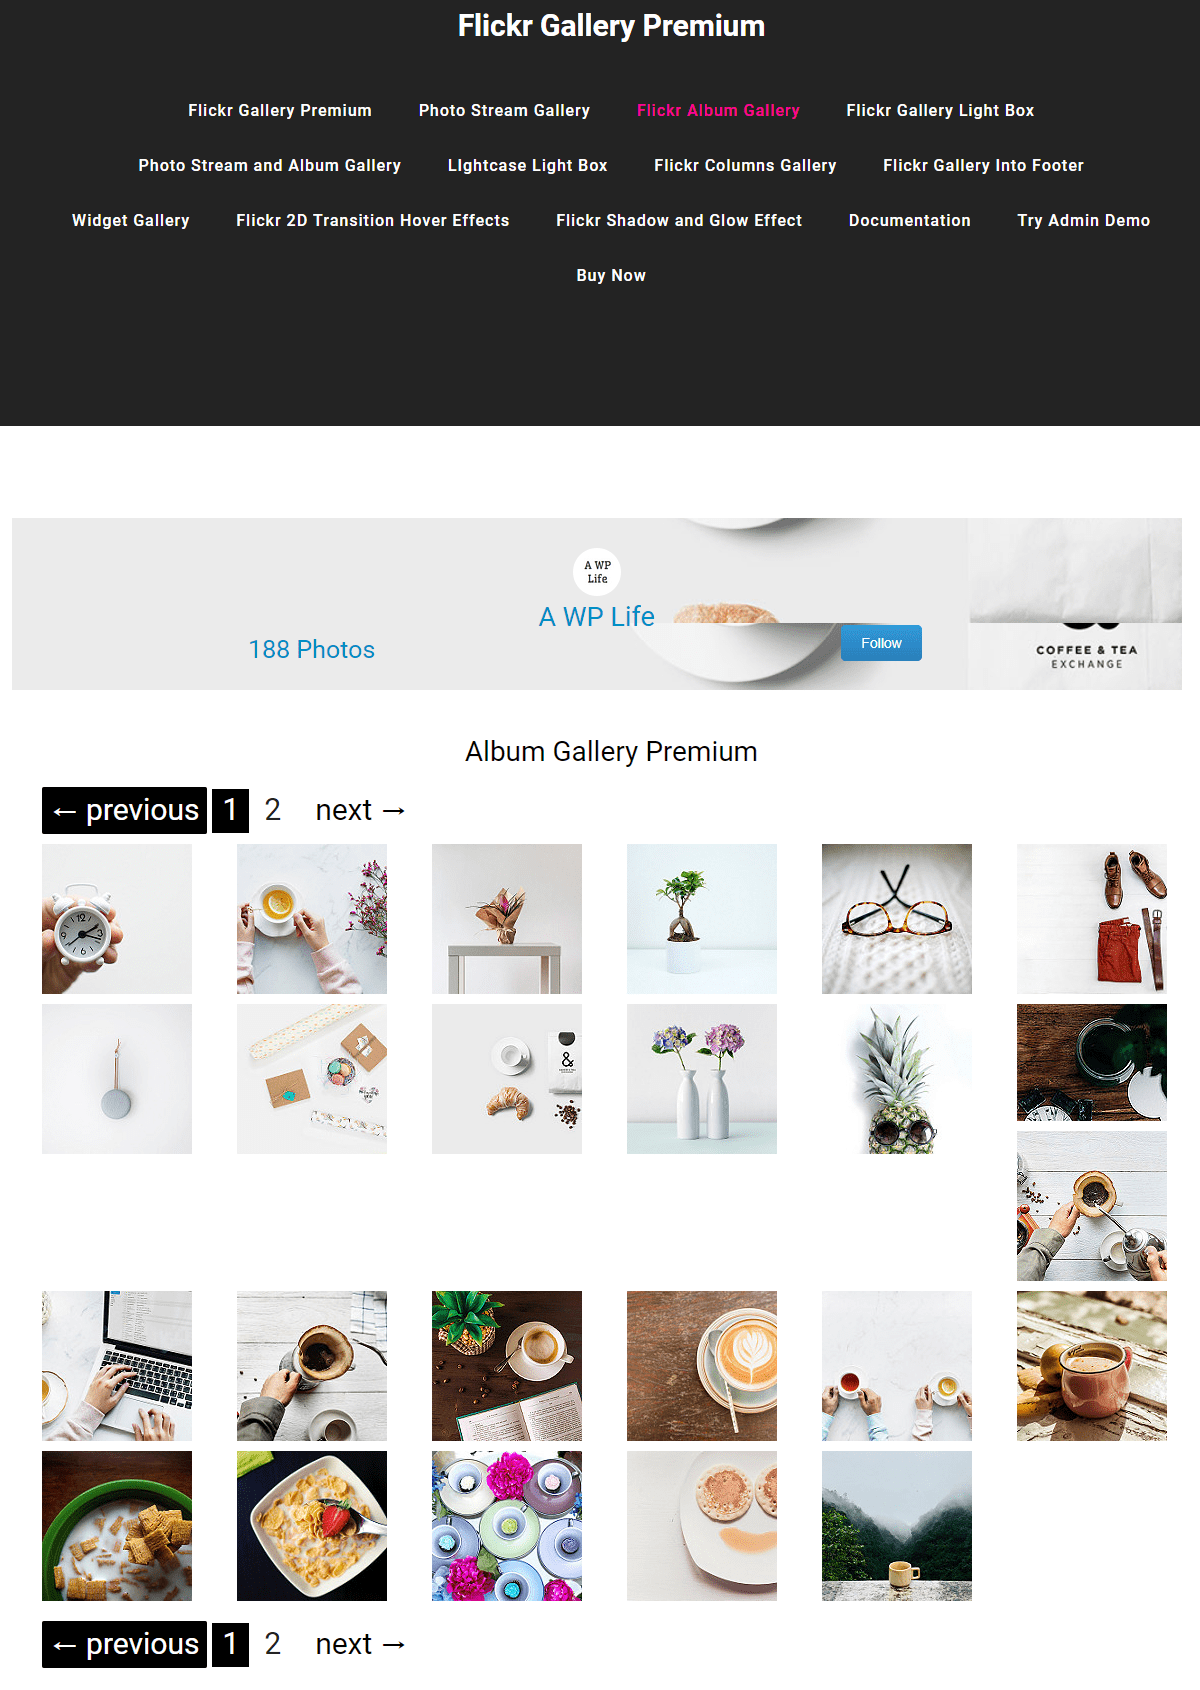 flicker gallery premium